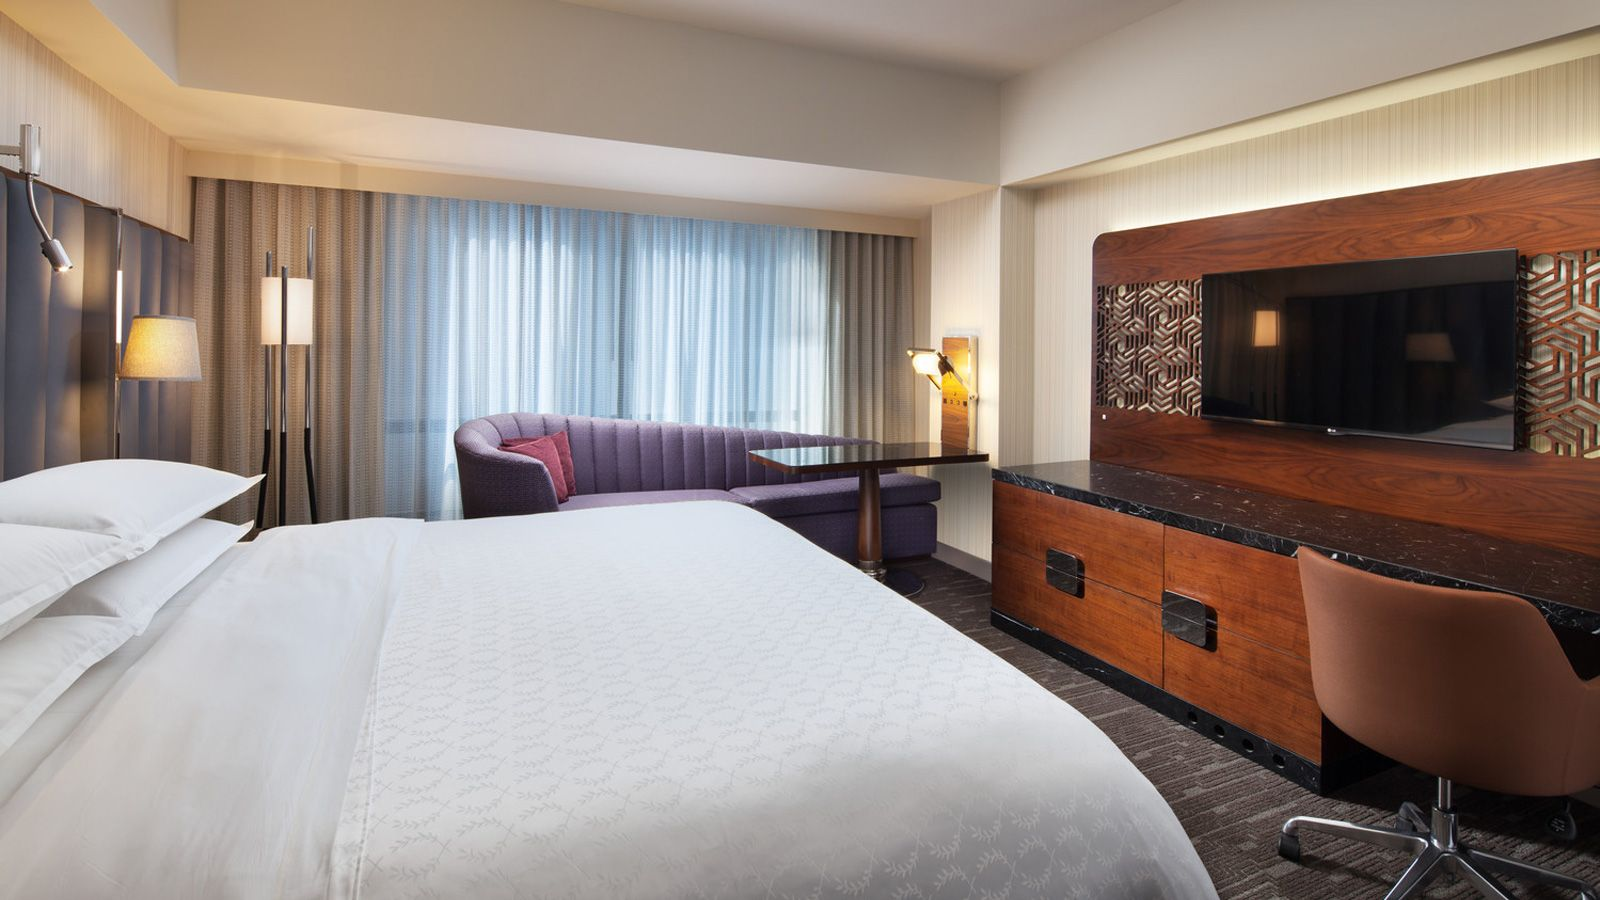 Los Angeles Lodging  Club Level Room  Sheraton Grand Los. Round Dining Room Tables Seats 8. Furniture For Living Room. White Dining Room Chair Covers. House Decor Ideas. Decorative Backyard Windmill. Decorating Large Walls. Pottery Barn Dining Room Table. Microfiber Living Room Set